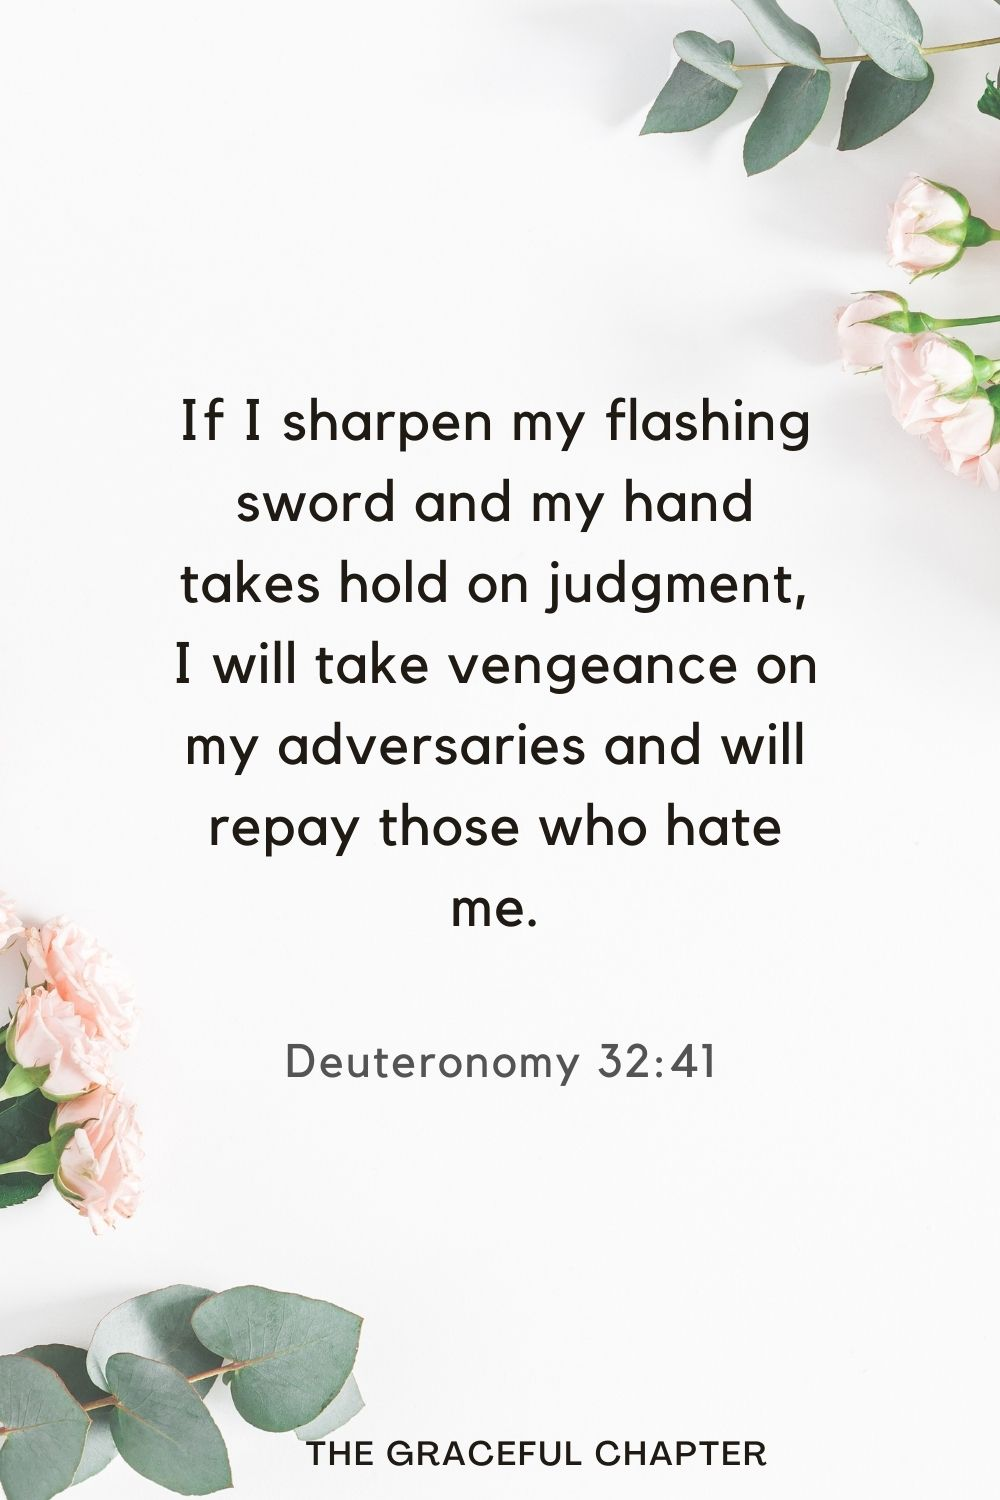 If I sharpen my flashing sword and my hand takes hold on judgment, I will take vengeance on my adversaries and will repay those who hate me. Deuteronomy 32:41